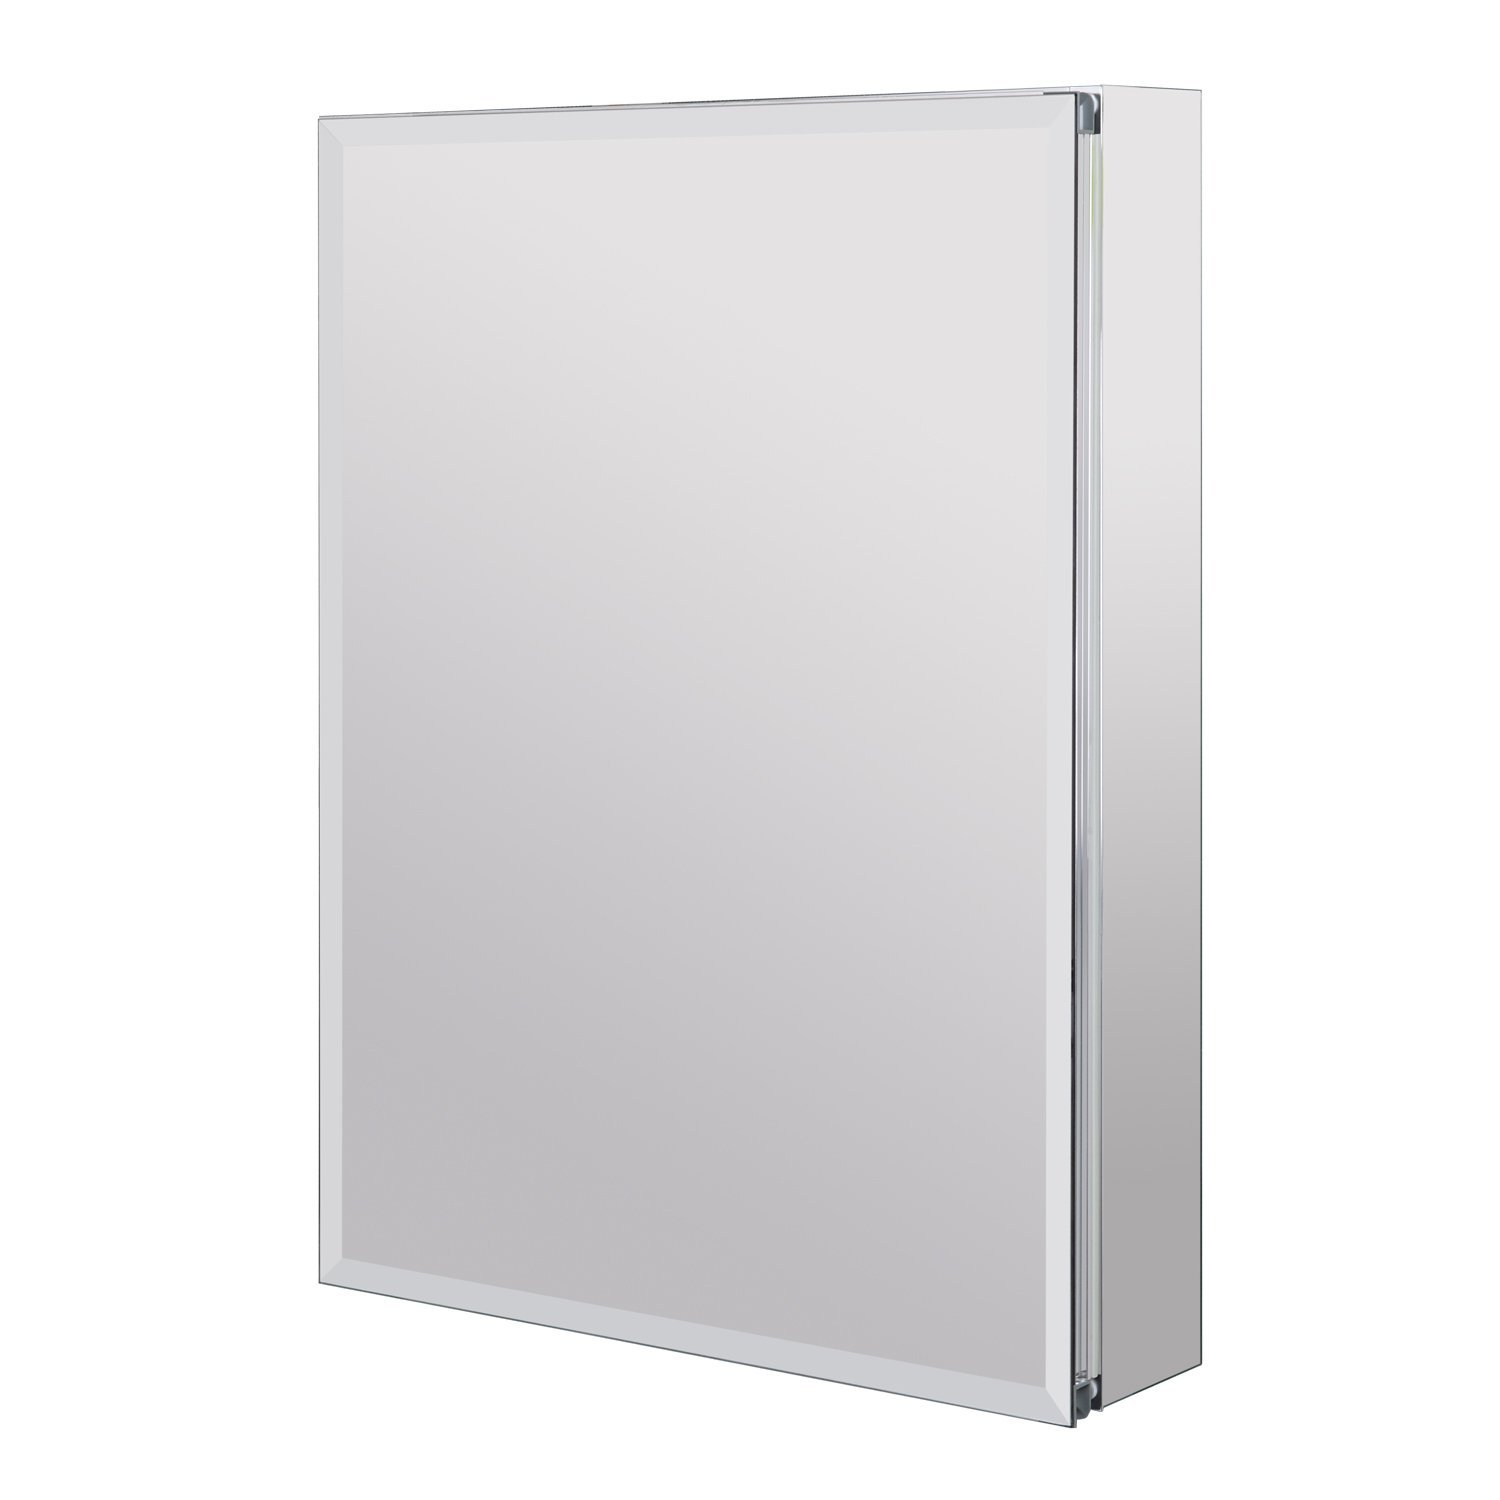 Utopia Alley Aluminum Medicine Cabinet with Glass Shelves, Single Door, 24'' L x 30'' H